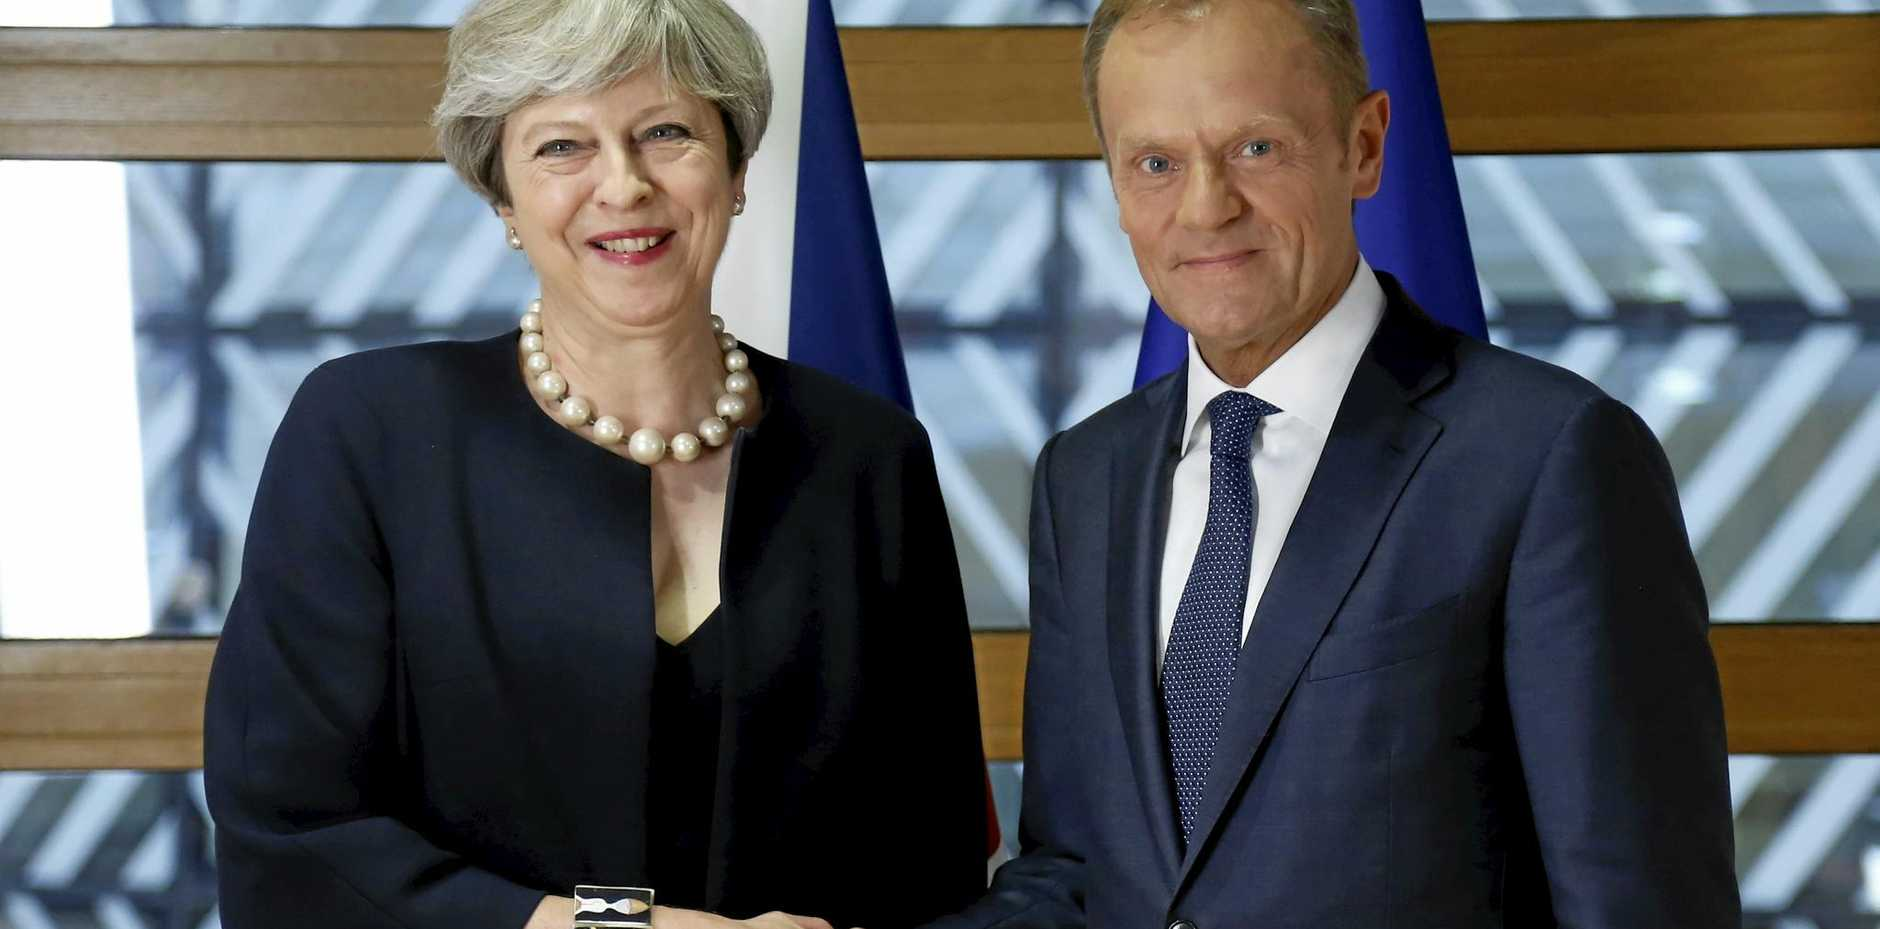 British Prime Minister Theresa May and European Council President Donald Tusk pose for photographers at an EU leaders summit in Brussels, Belgium.